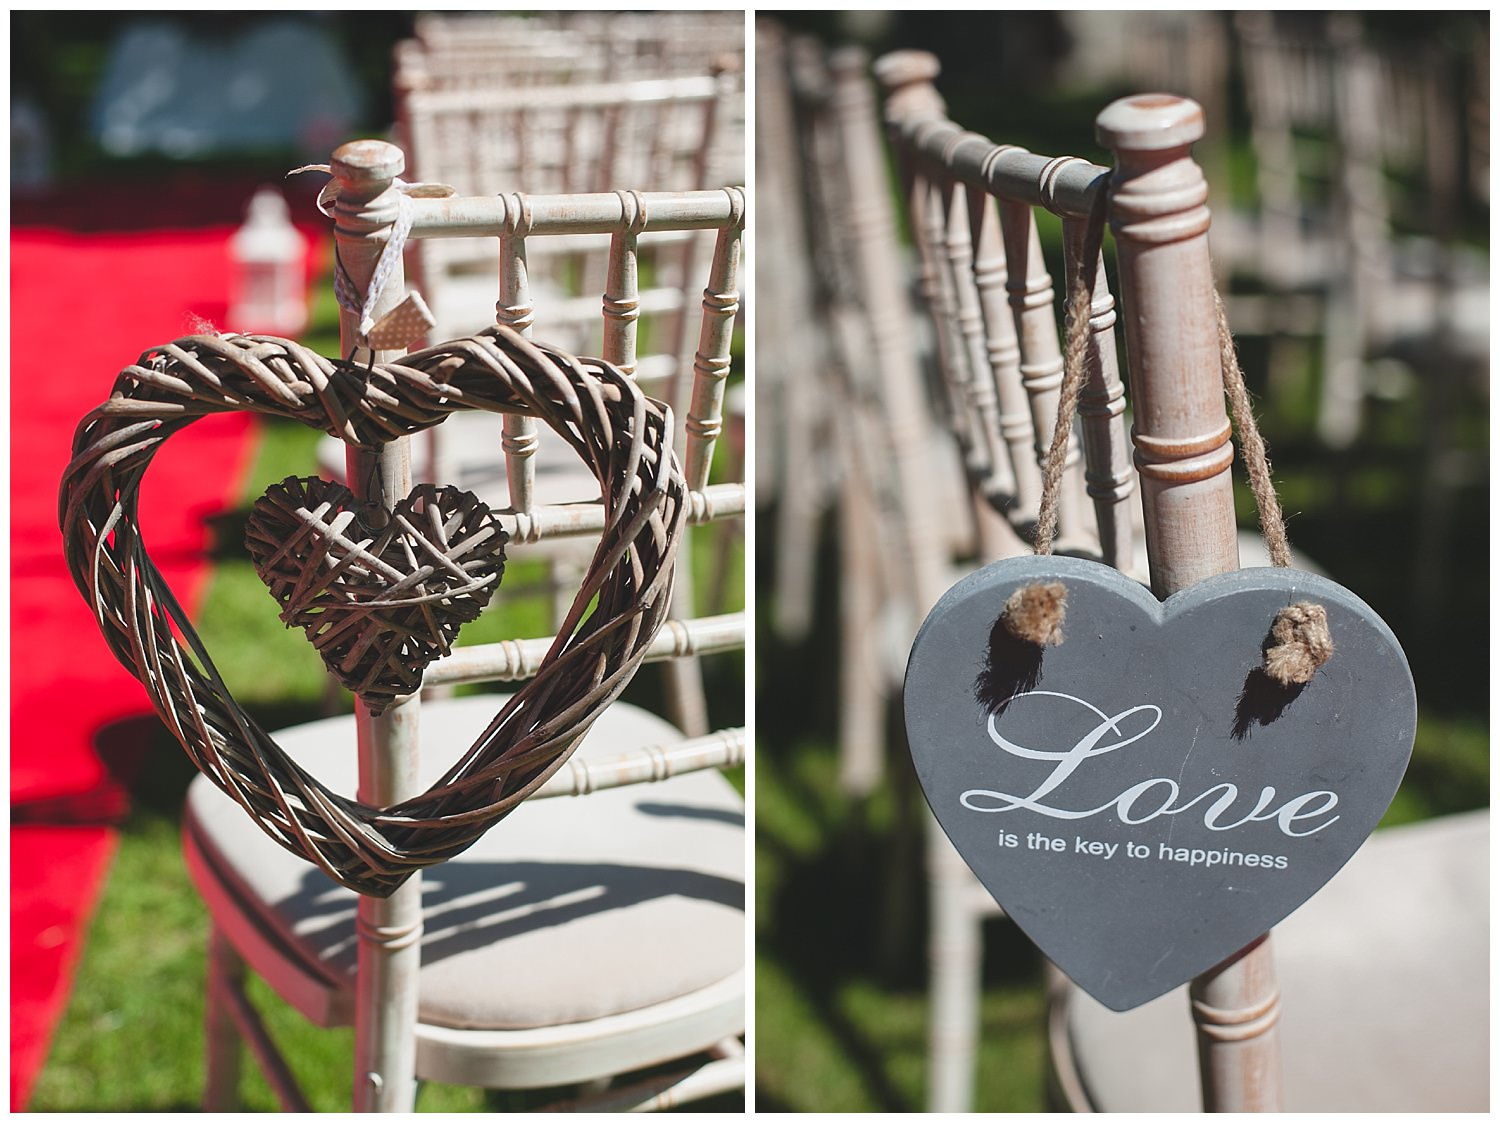 Decoration ideas for chairs at your ceremony